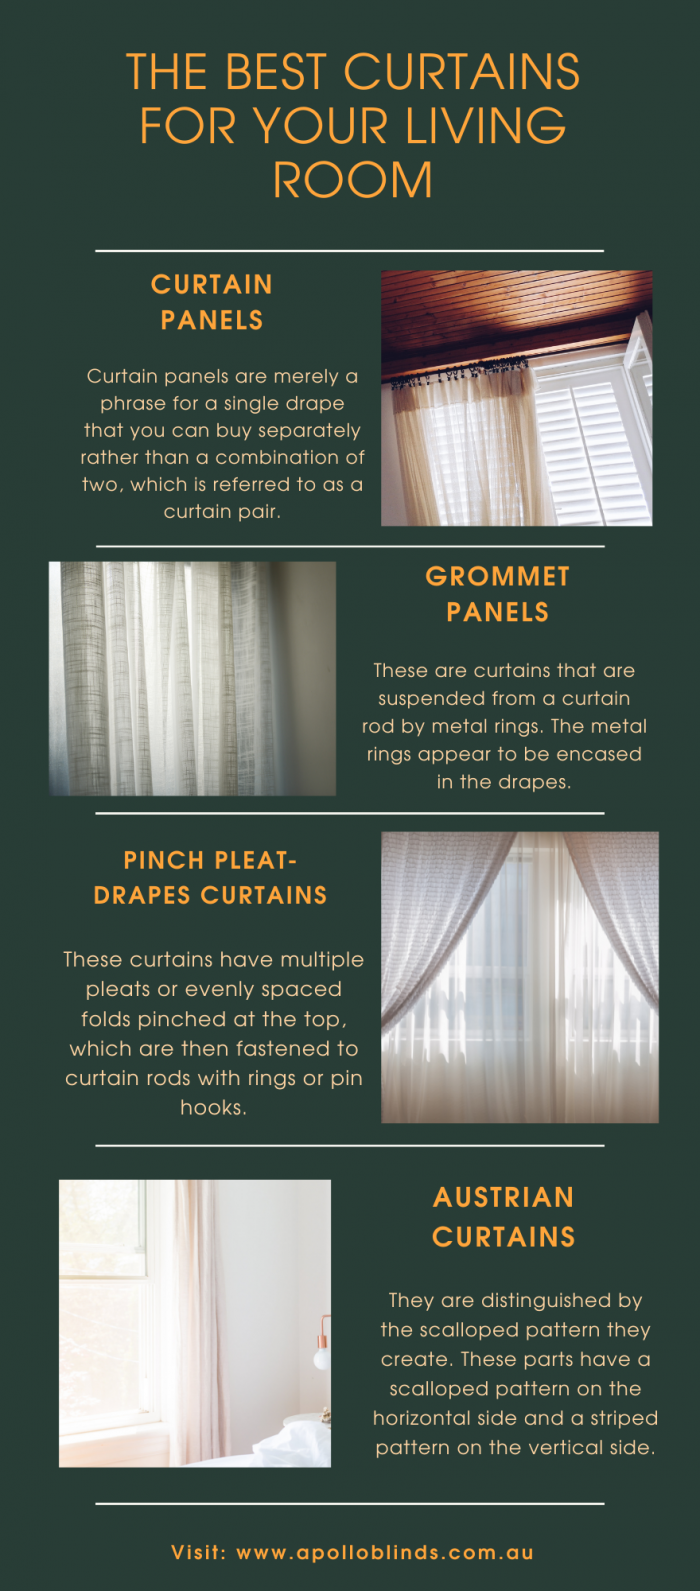 THE BEST CURTAINS FOR YOUR LIVING ROOM